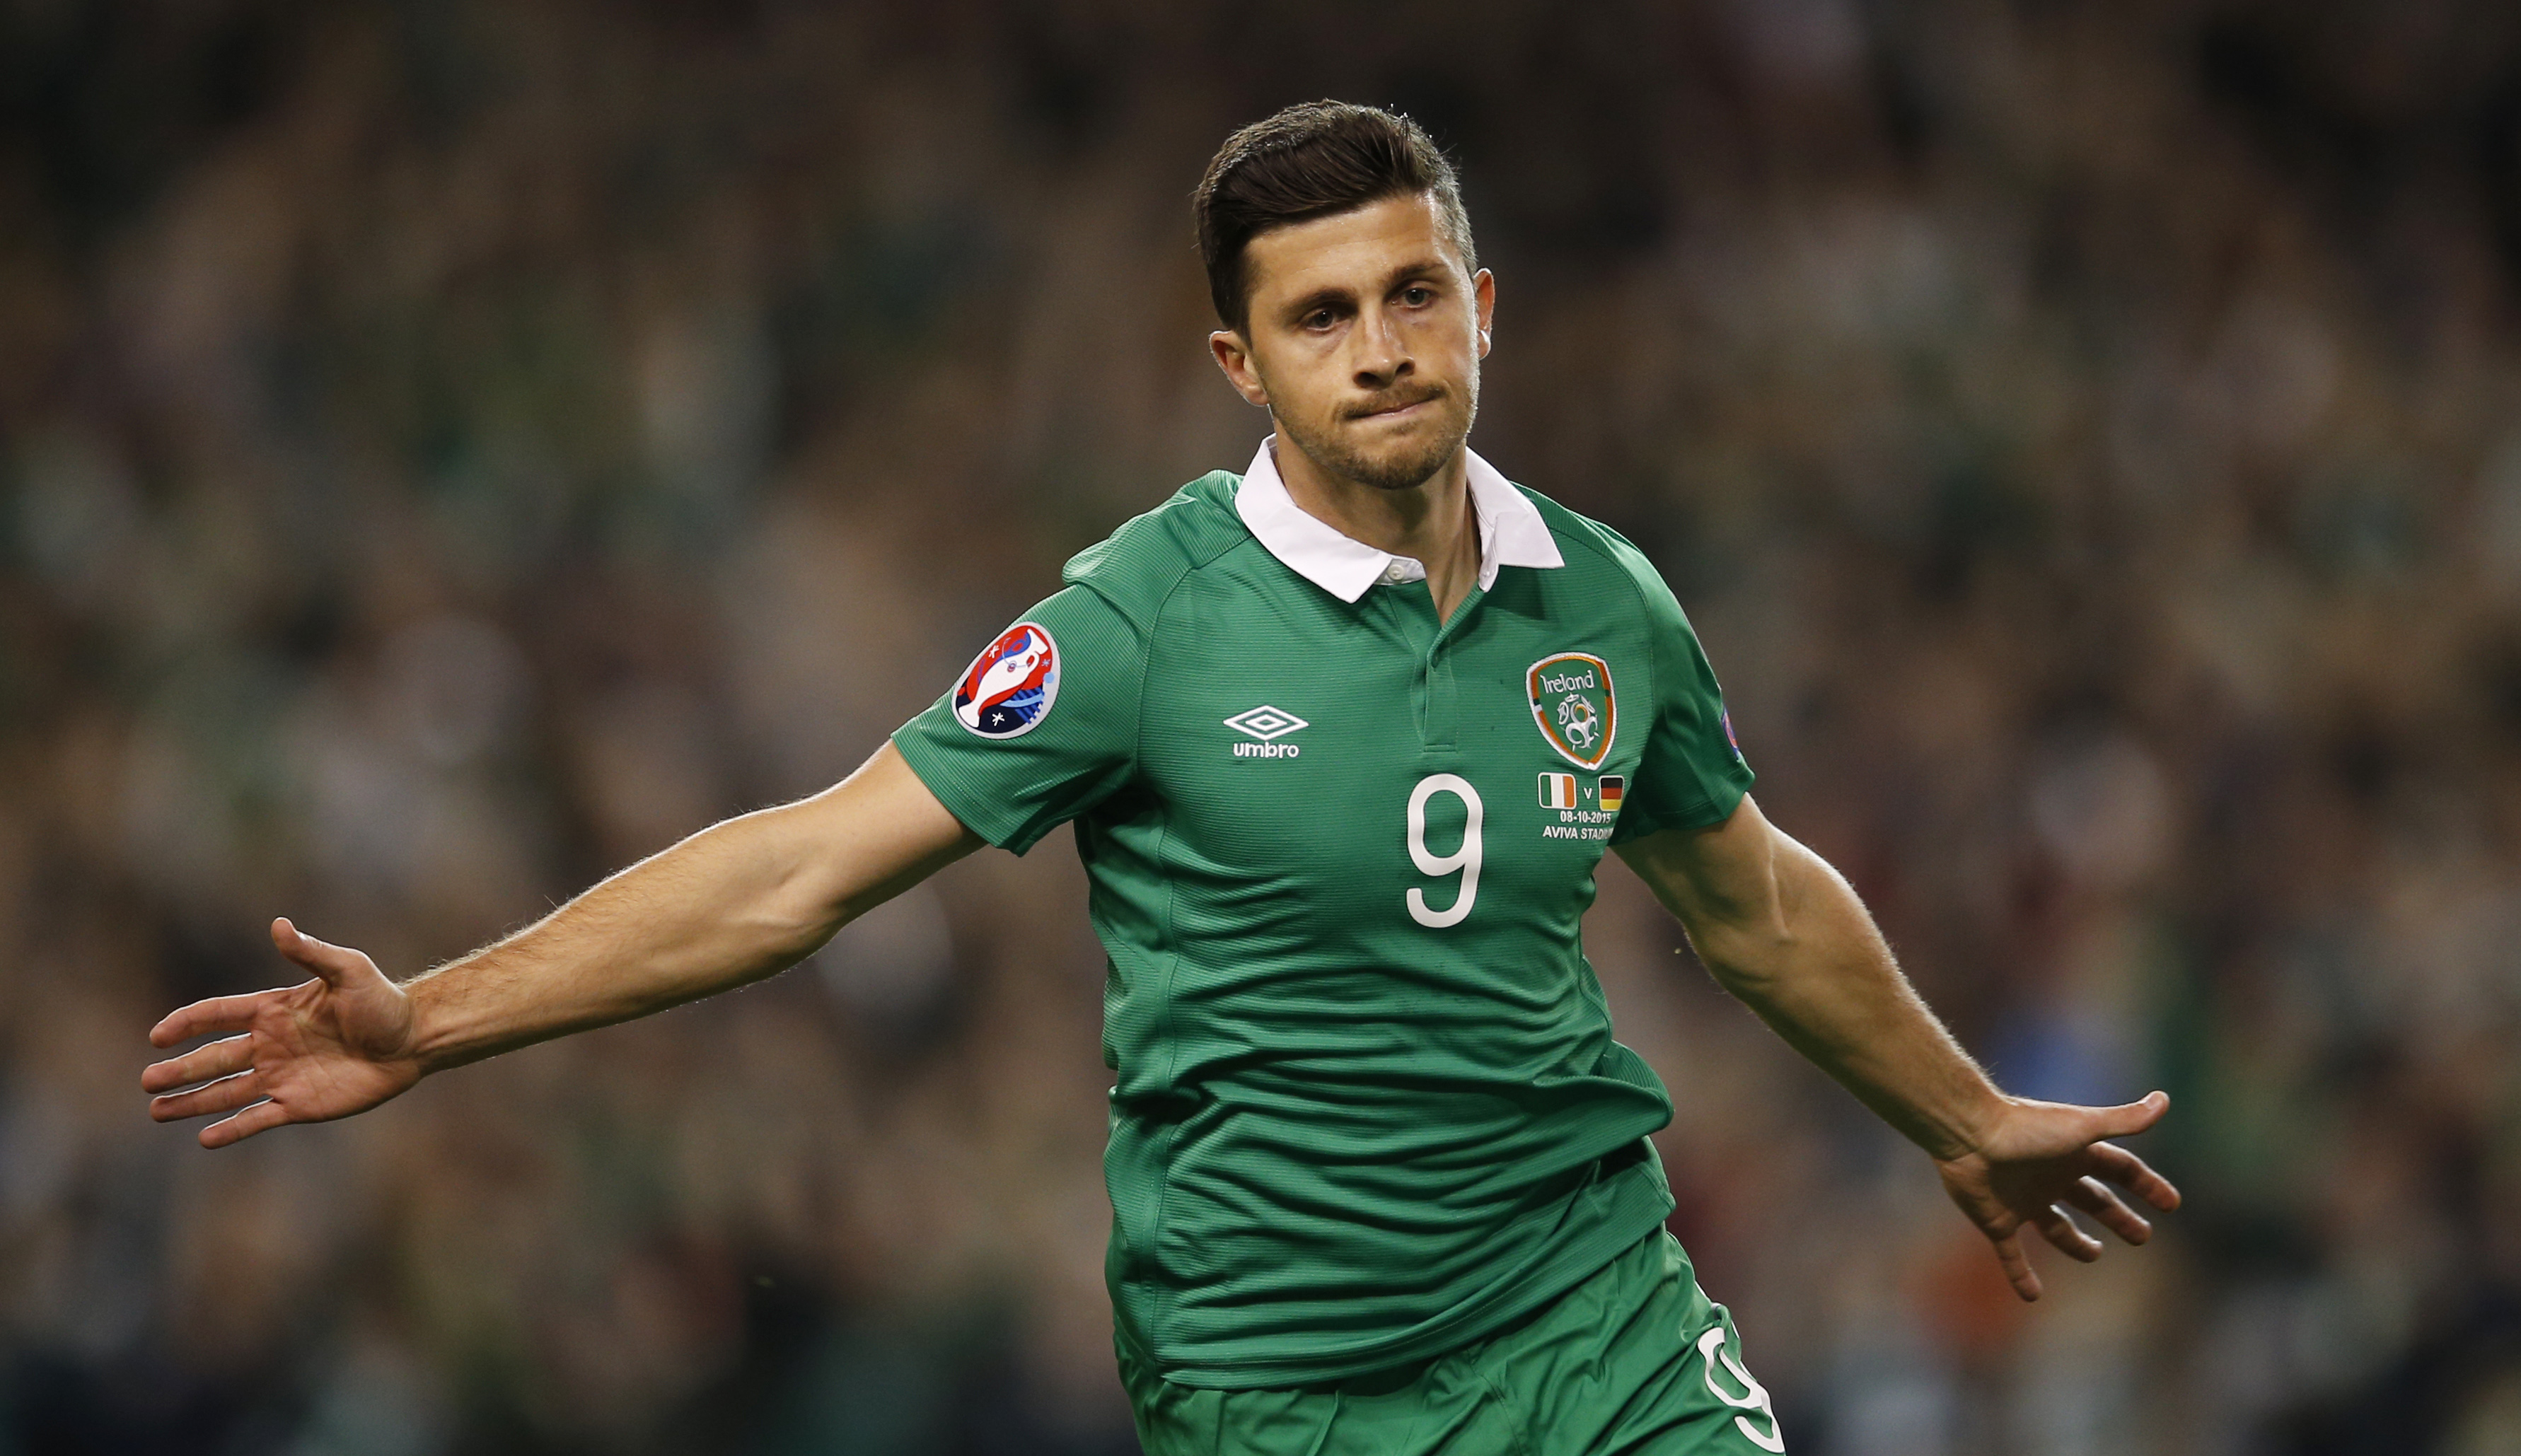 Football - Republic of Ireland v Germany - UEFA Euro 2016 Qualifying Group D - Aviva Stadium, Dublin, Republic of Ireland - 8/10/15nShane Long celebrates after scoring the first goal for Republic of IrelandnAction Images via Reuters / Andrew CouldridgenLivepicnEDITORIAL USE ONLY.